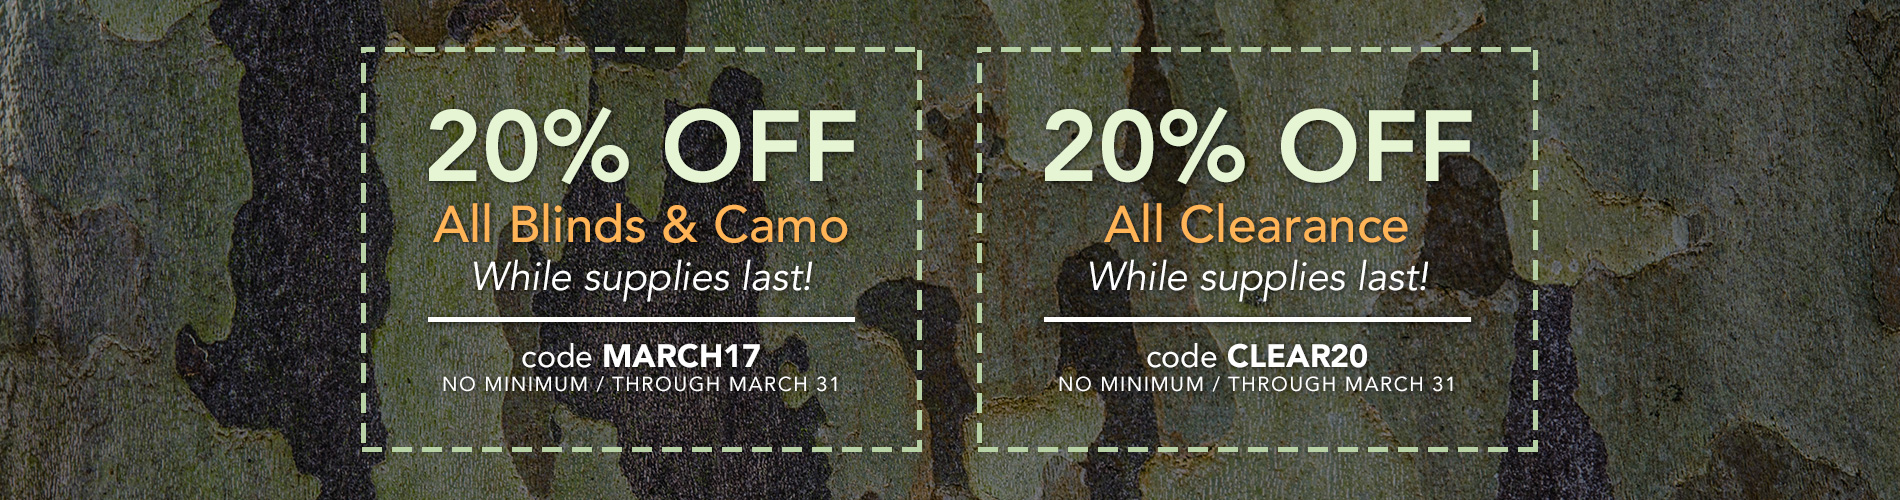 20% Off All Blinds & Camo - code MARCH17. 20% Off All Clearance - code CLEAR20. While supplies last, no minimum.